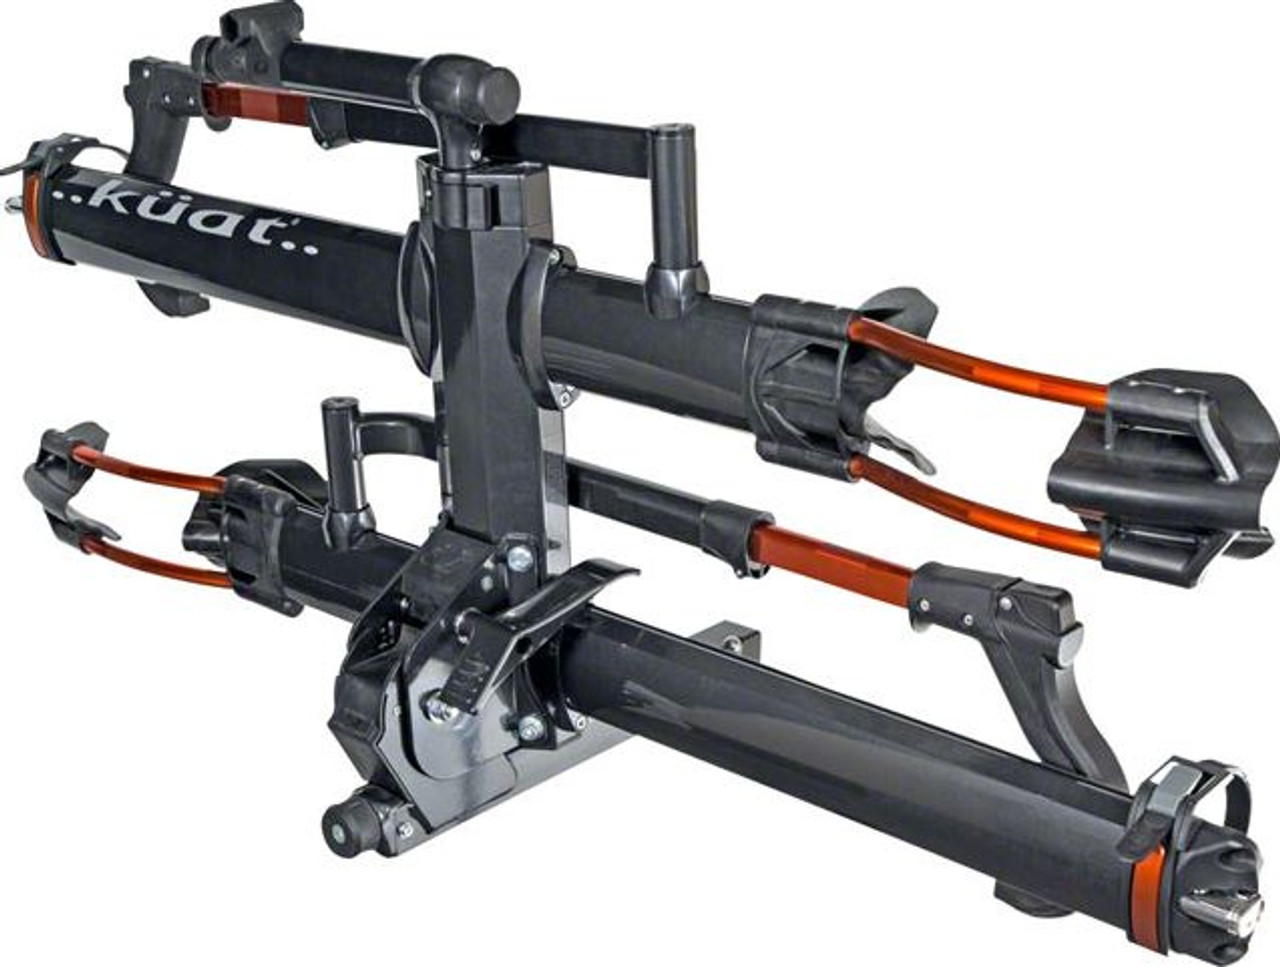 skis blister nv gear review kuat snowboards reviews mountain bike at k rack